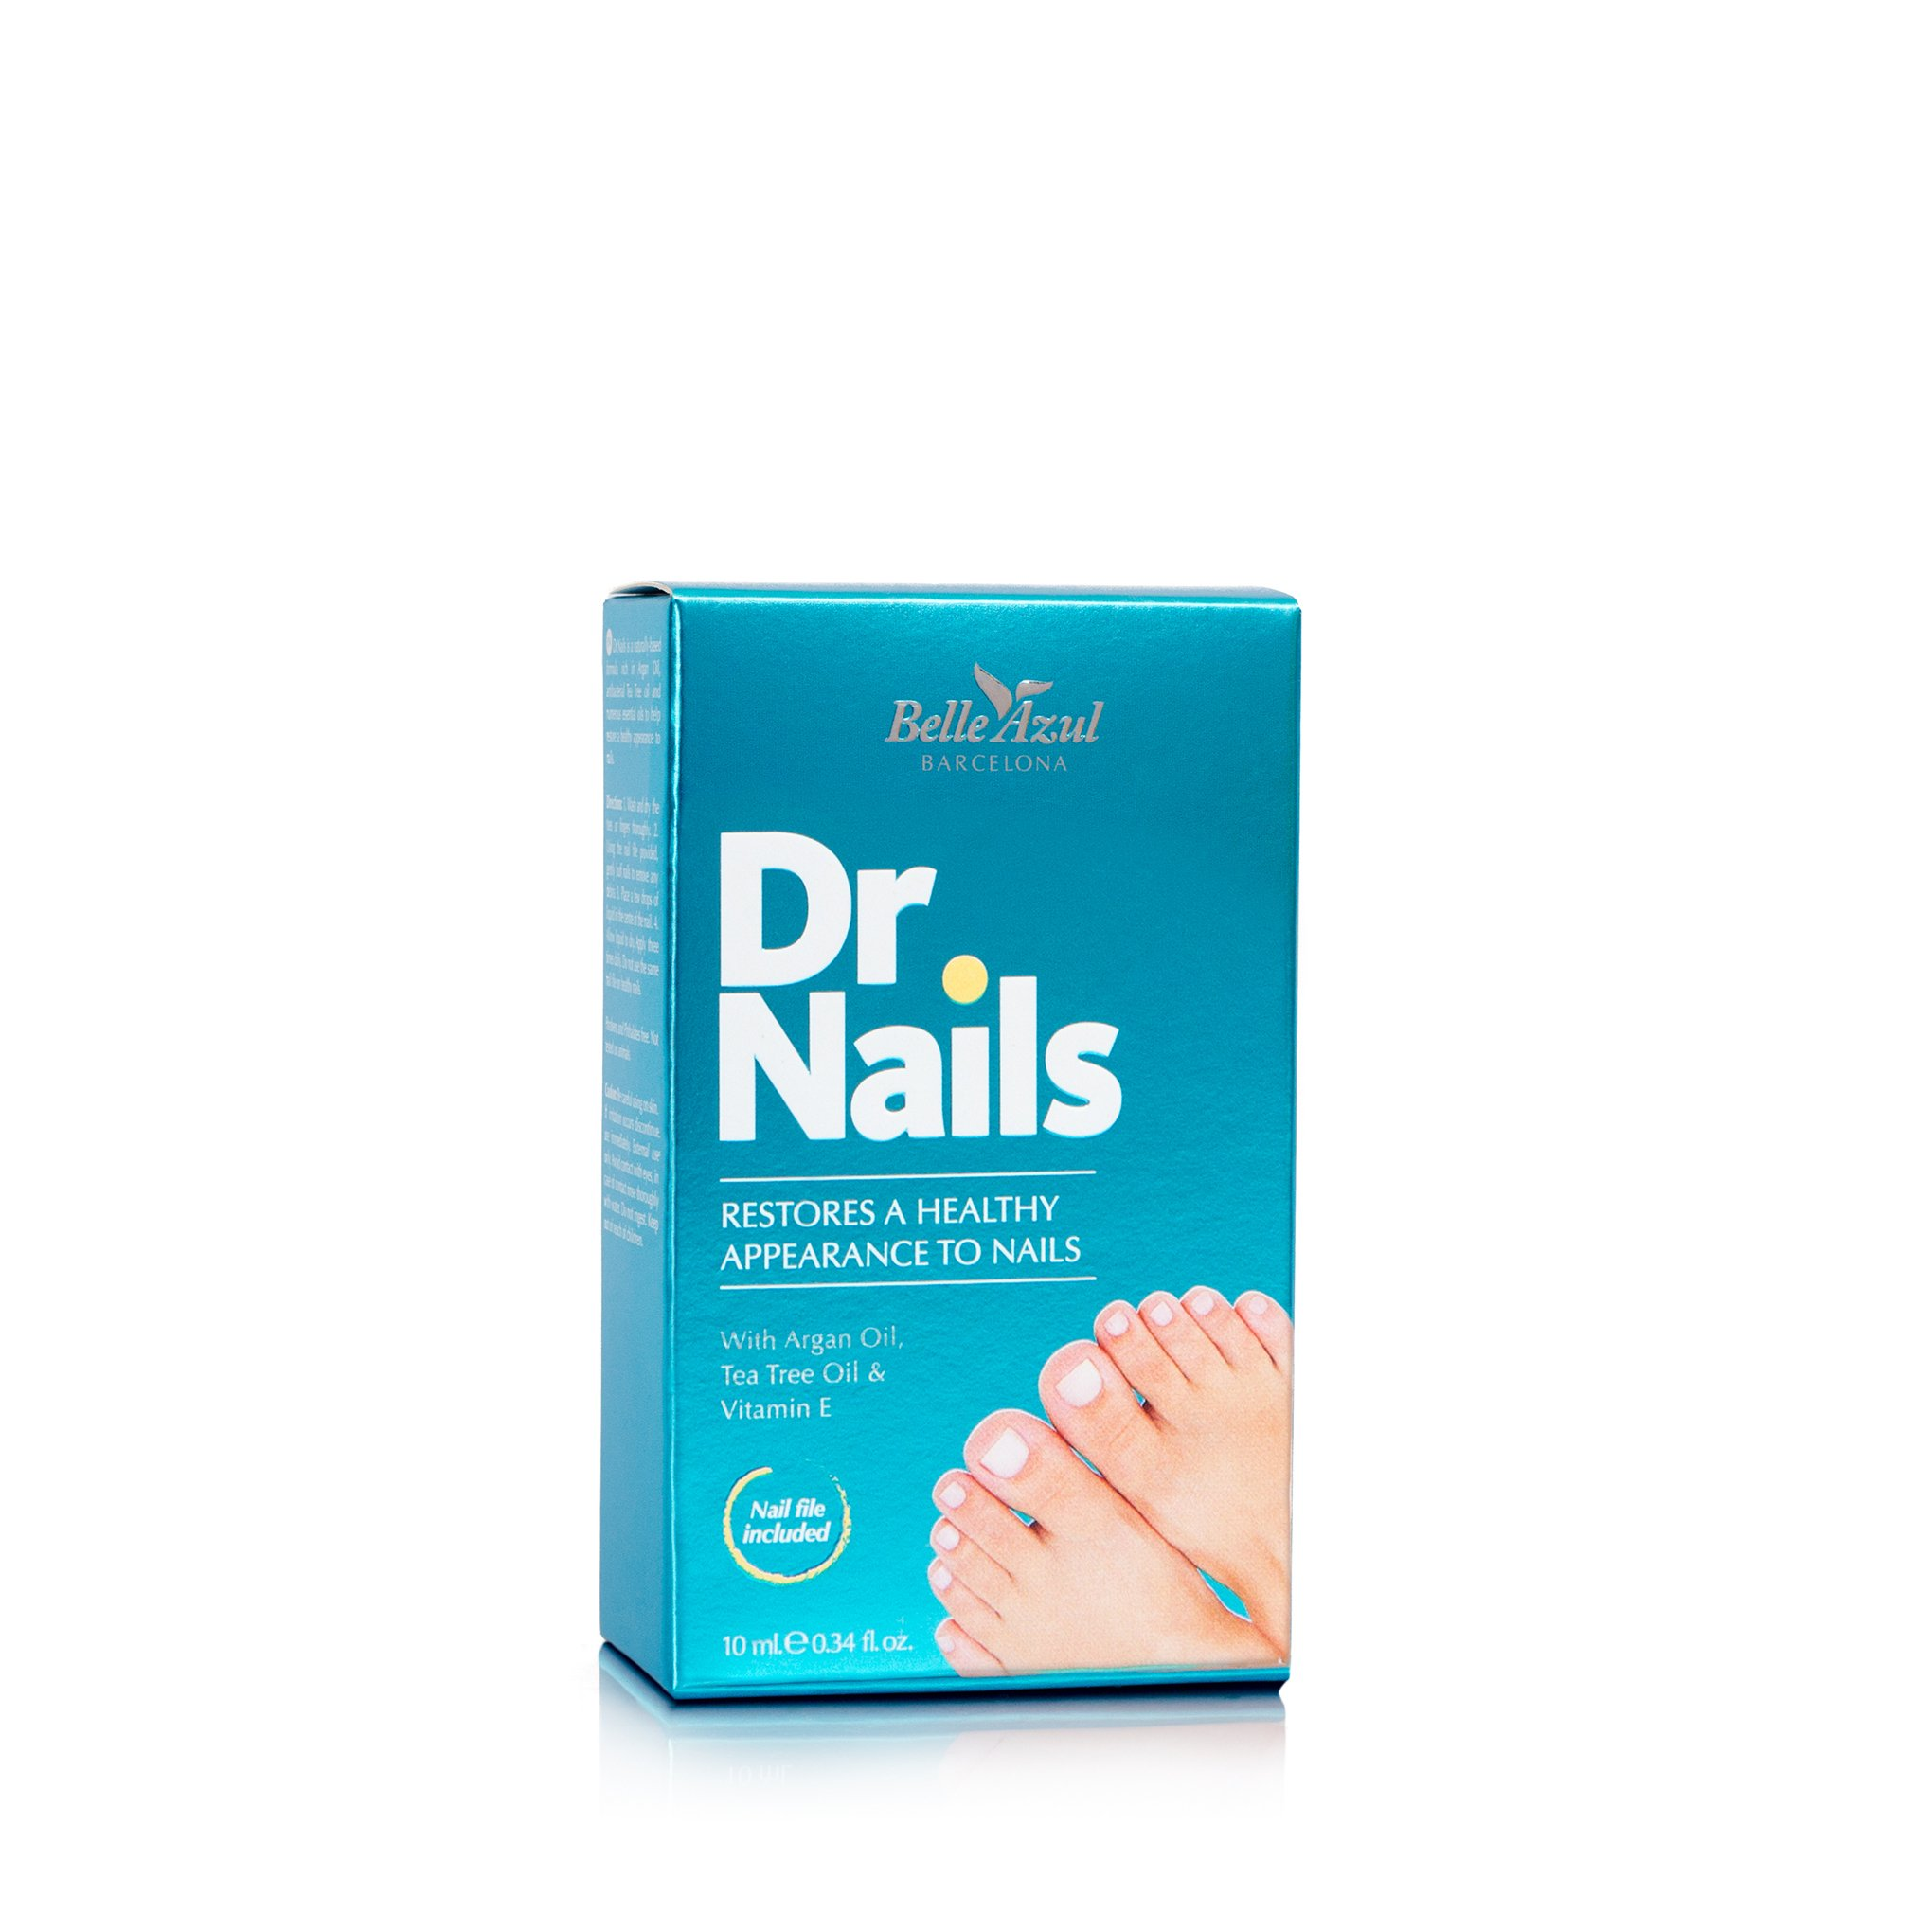 Belle Azul Dr. Nails - Nail Fungus Treatment & Nail Whitener with Antibacterial Tea Tree Oil - Effective Toenails & Fingernails Solution. 10ml / 0.34fl.oz by Belle Azul (Image #3)